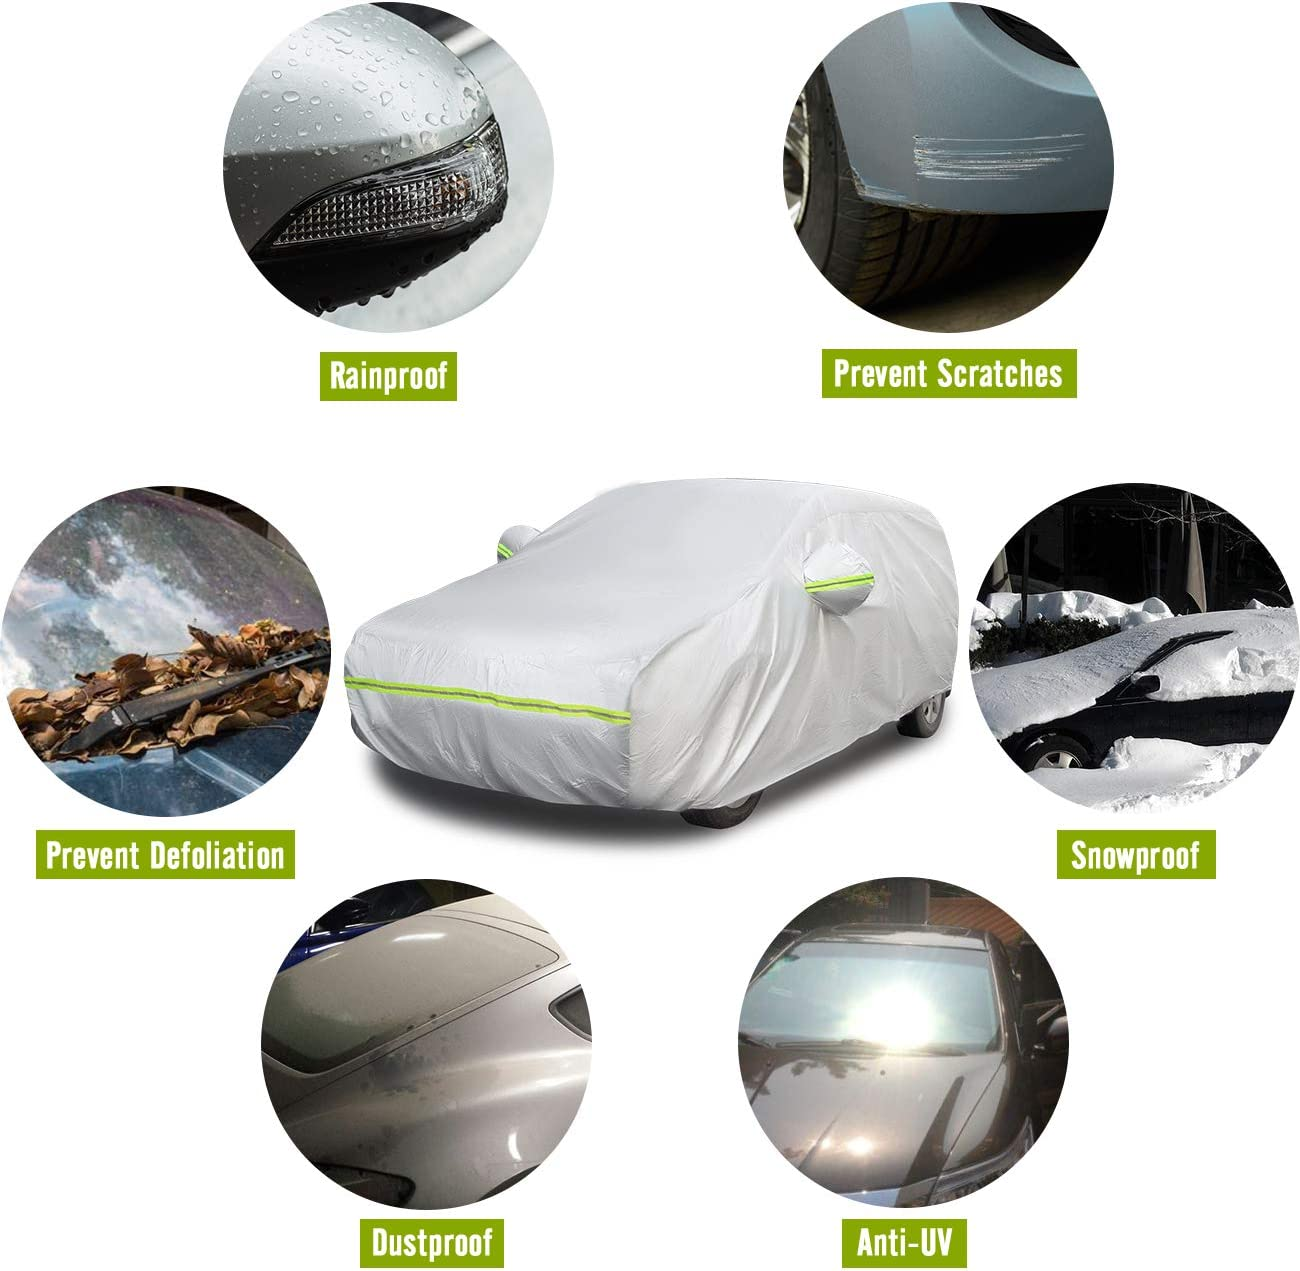 Favoto Car Cover Hatchback Cover 6 Layers Universal Fit 145 to 157 inch Left Side Zipper Design Sun Protection Waterproof Windproof Dustproof Snow Leaves Scratch Resistant Full Exterior Covers